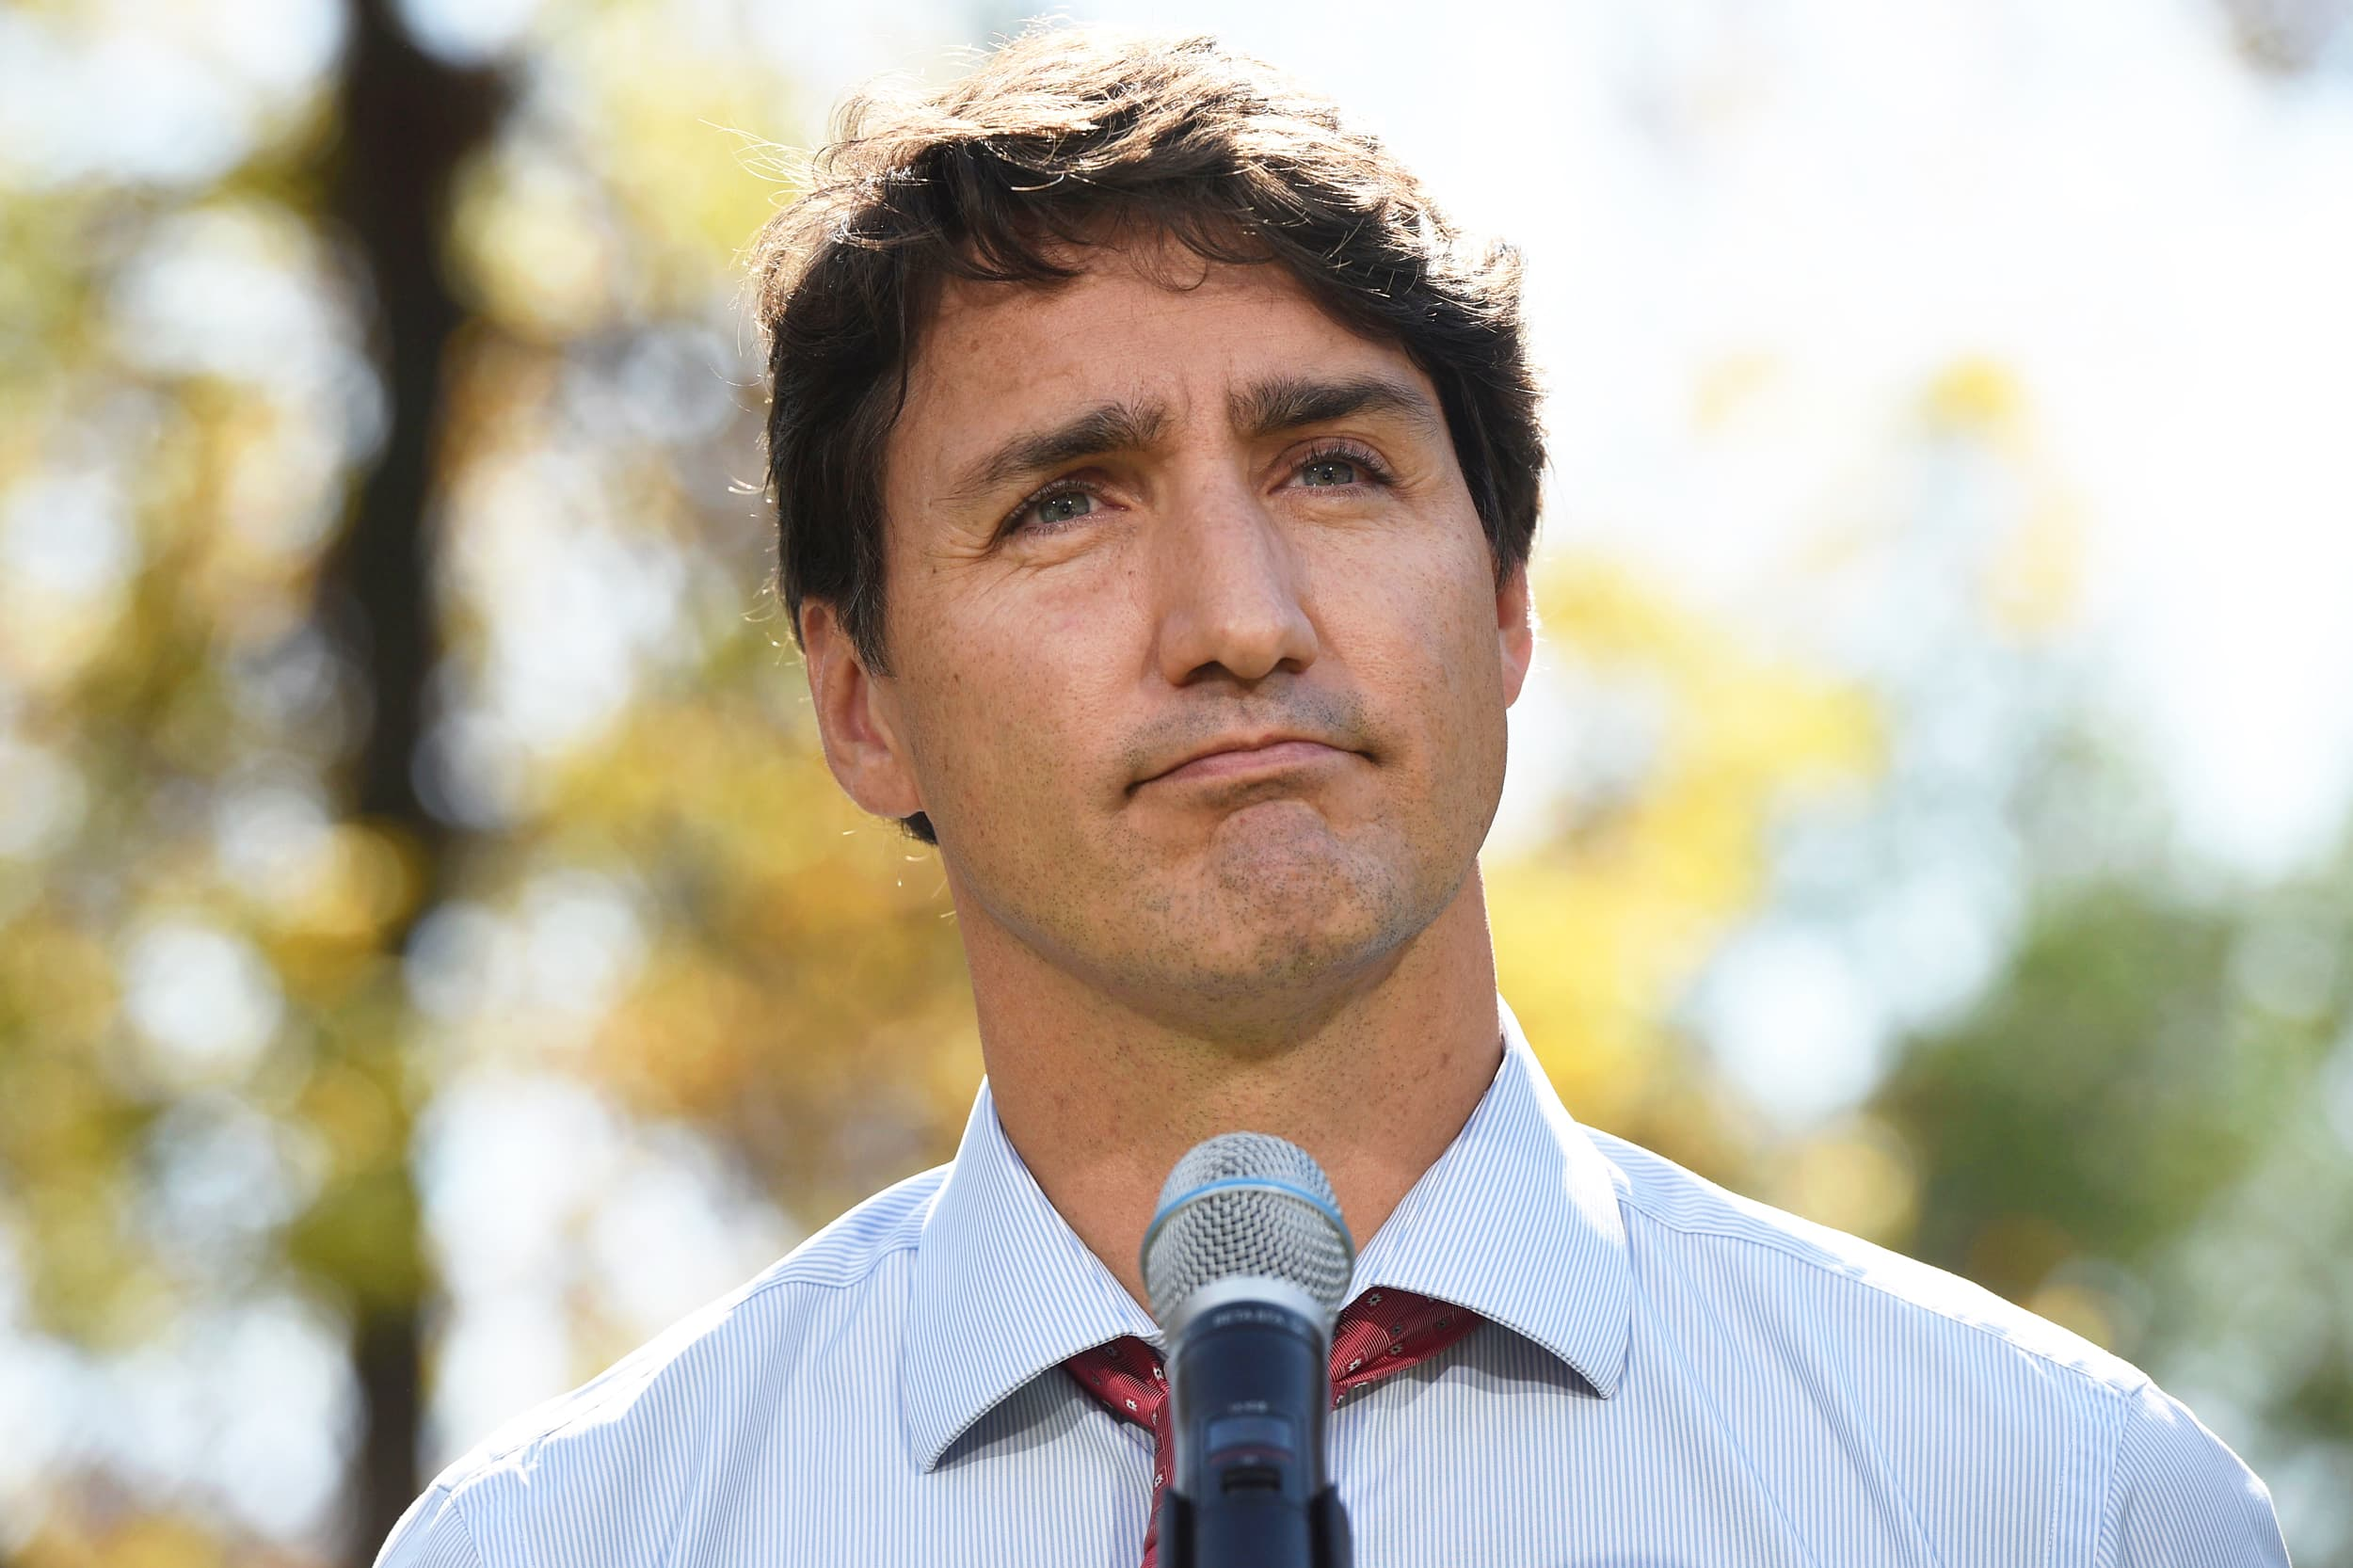 Canada's Trudeau apologizes for racist photos but does not rule out possibility there are more